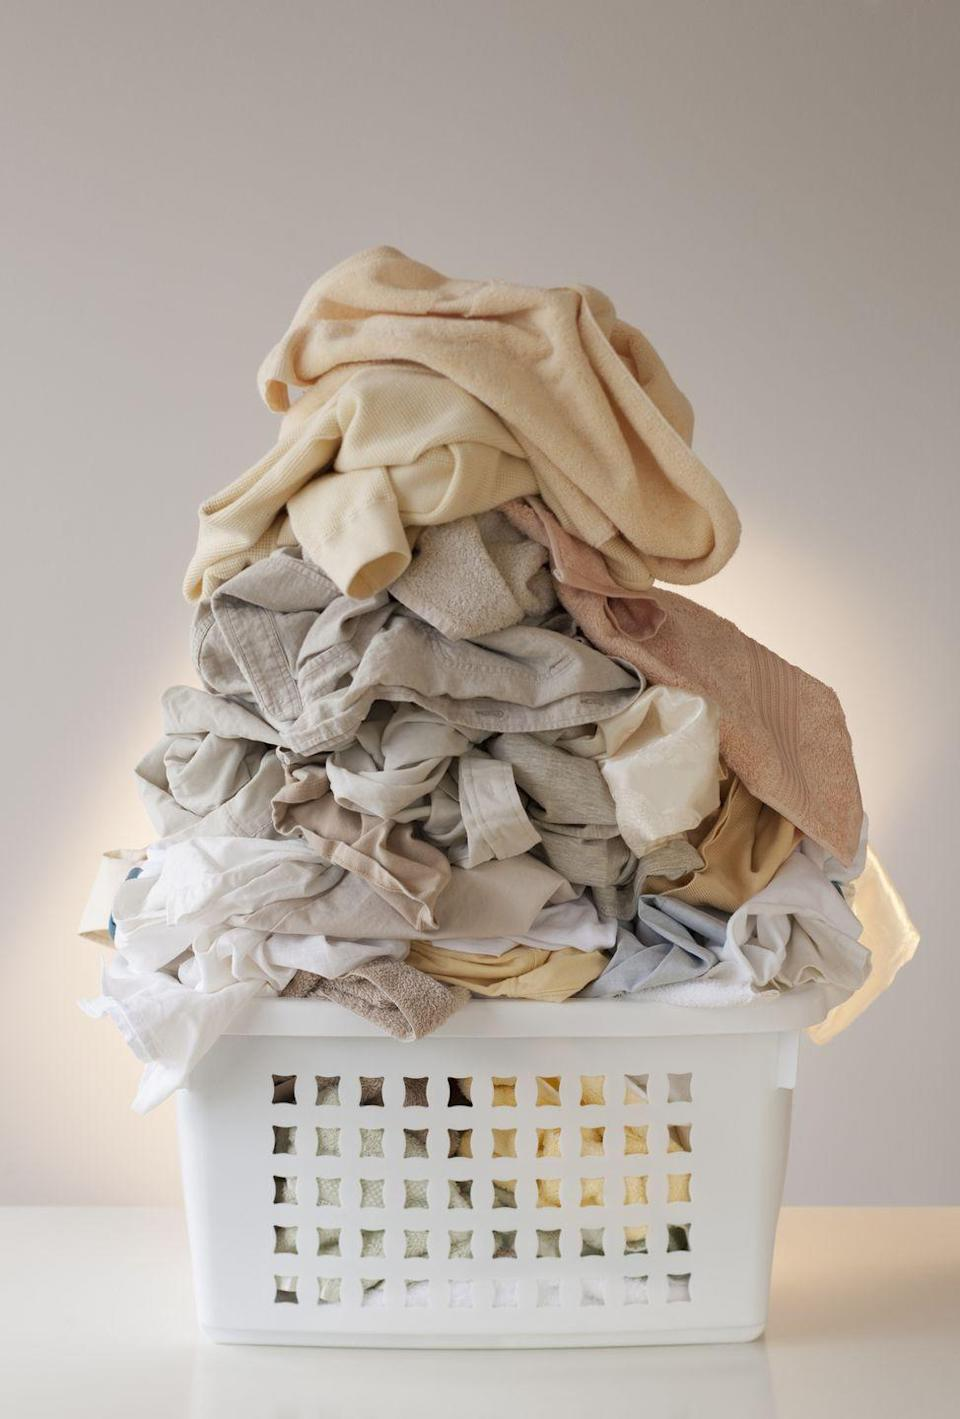 "<p>While washing your towels after every three uses and giving them a <a href=""https://www.countryliving.com/life/a43684/how-often-you-should-wash-your-towels/"" rel=""nofollow noopener"" target=""_blank"" data-ylk=""slk:vinegar treatment"" class=""link rapid-noclick-resp"">vinegar treatment</a> will typically keep 'em fresh, if they're discolored, it's time to pony up for <a href=""https://www.bedbathandbeyond.com/store/category/bath/bath-towels-rugs/bath-towels/13434/"" rel=""nofollow noopener"" target=""_blank"" data-ylk=""slk:new ones"" class=""link rapid-noclick-resp"">new ones</a>.</p>"